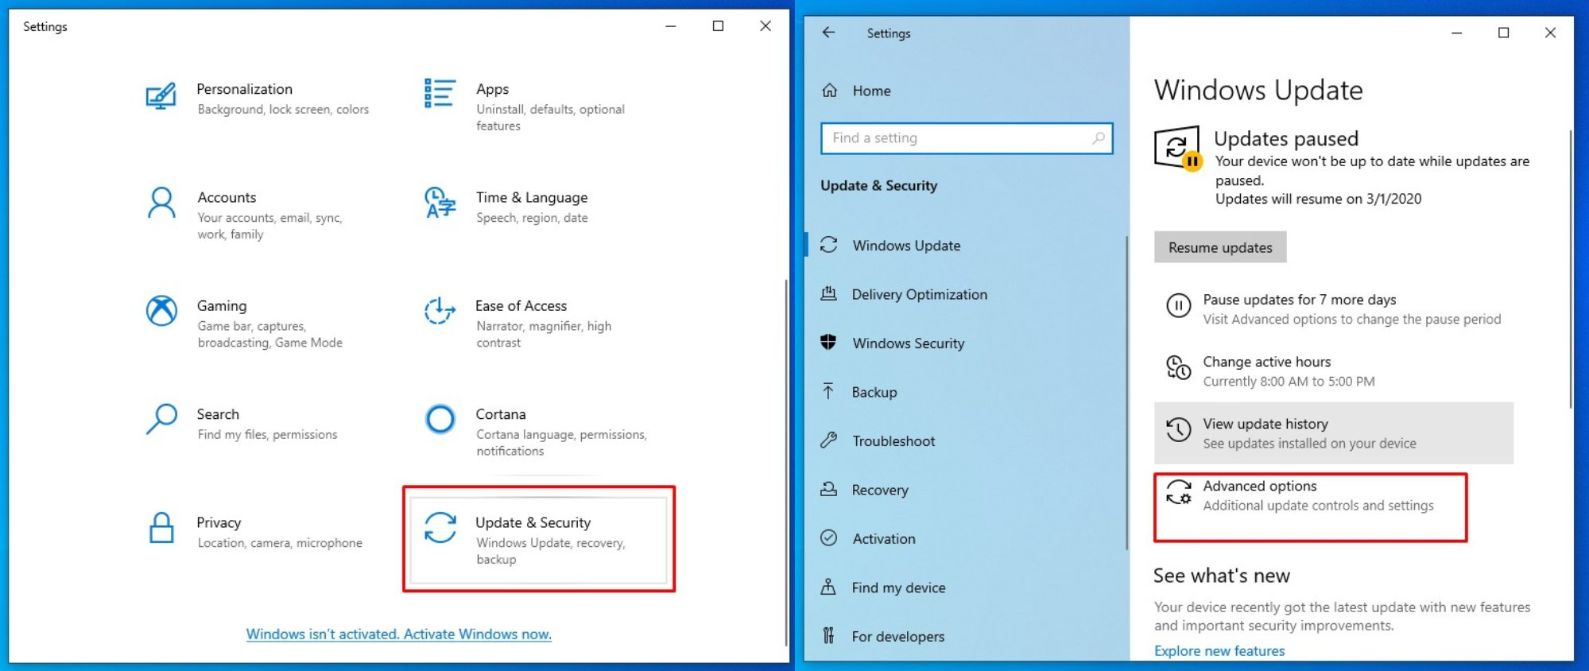 windows 10 update and security advance option